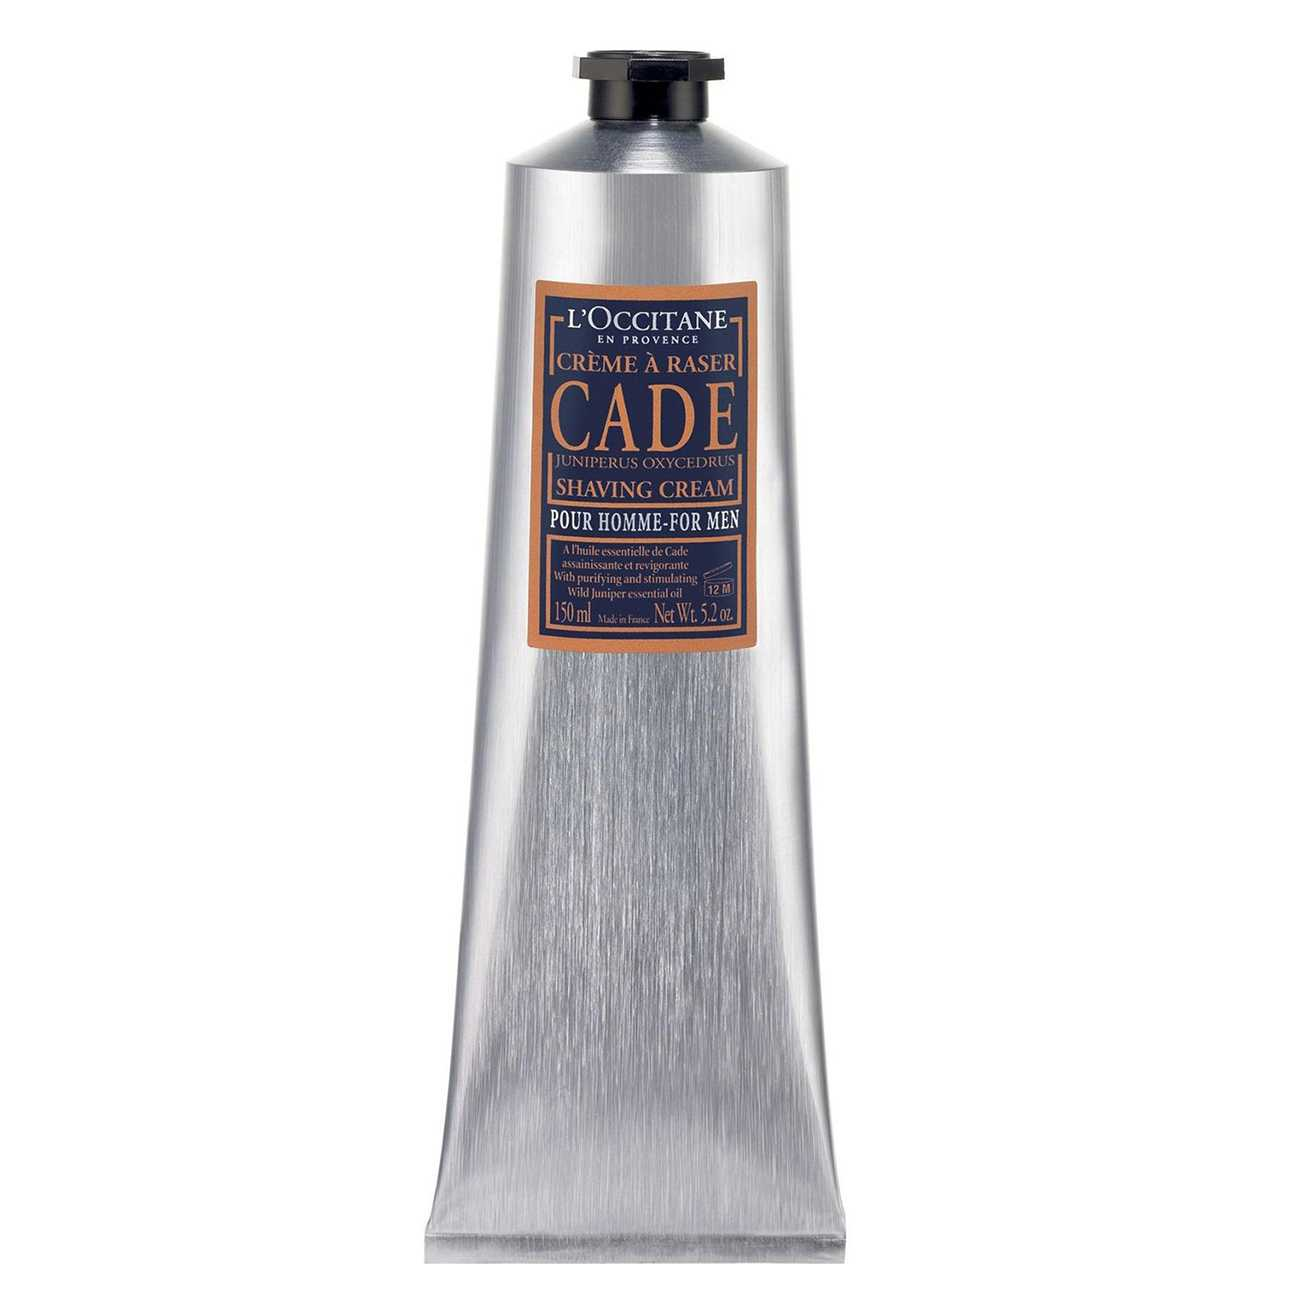 Cade Shaving Cream 150 Ml imagine